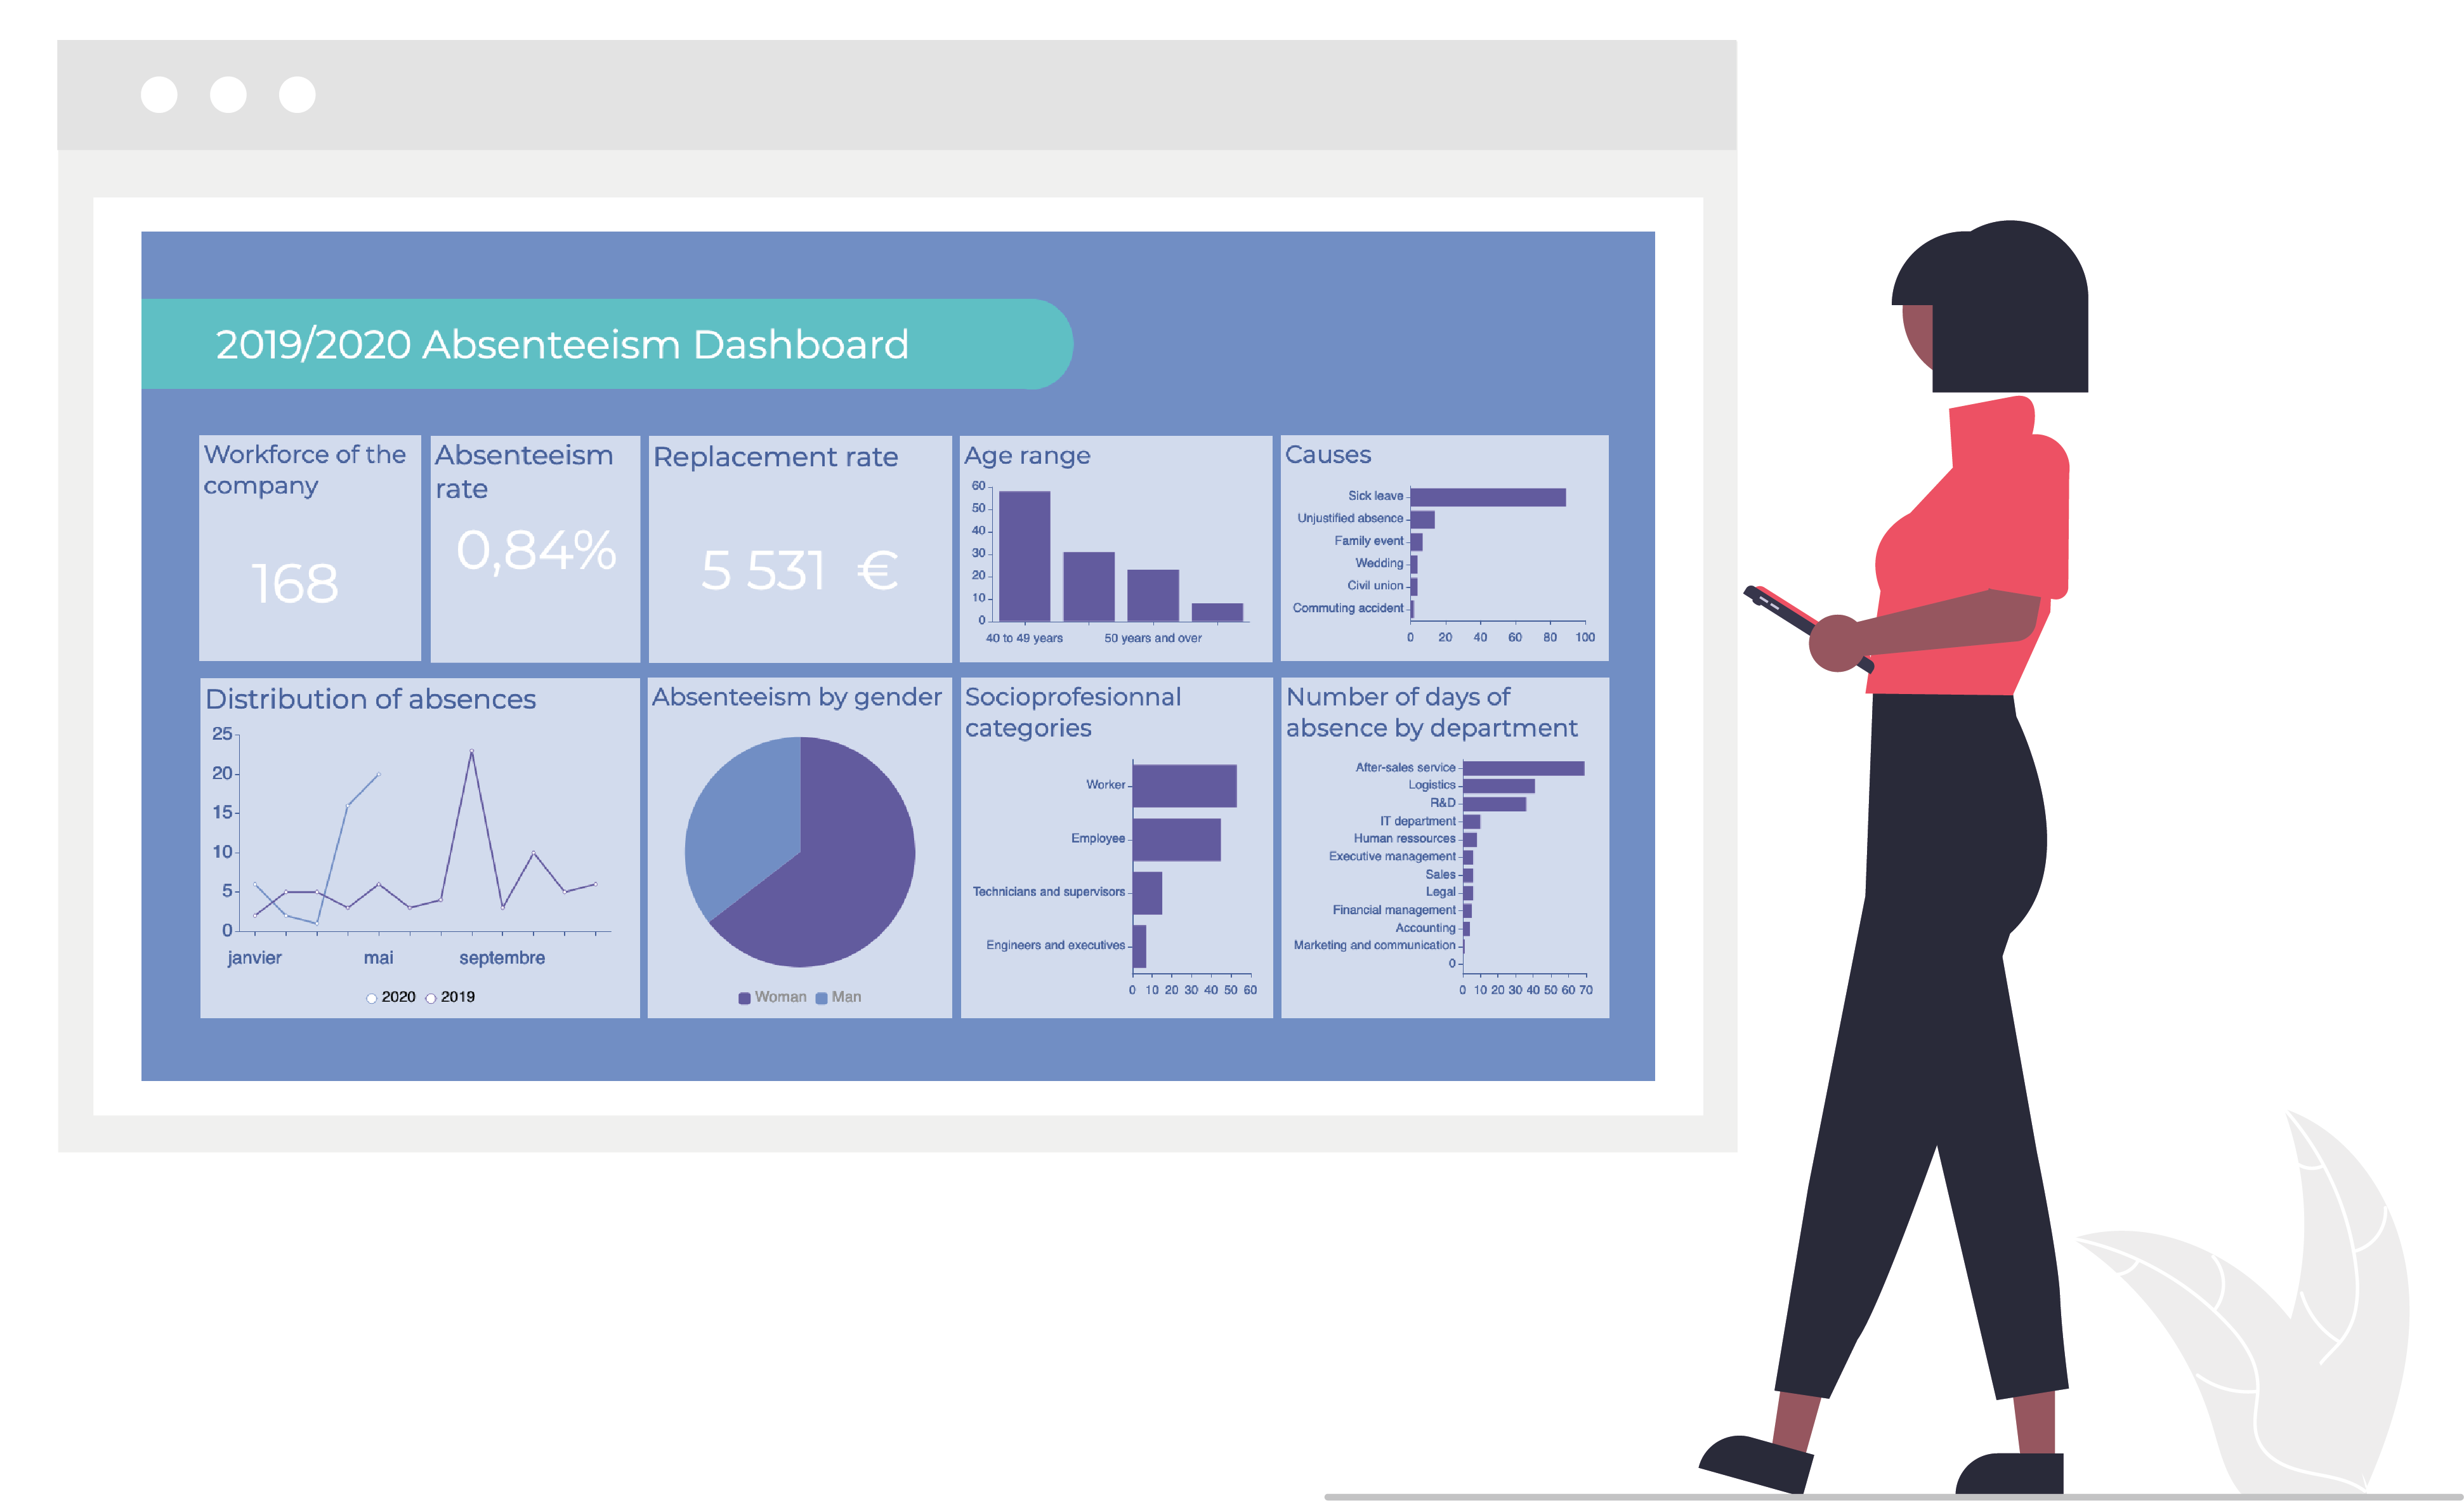 How to make an HR dashboard on absenteeism